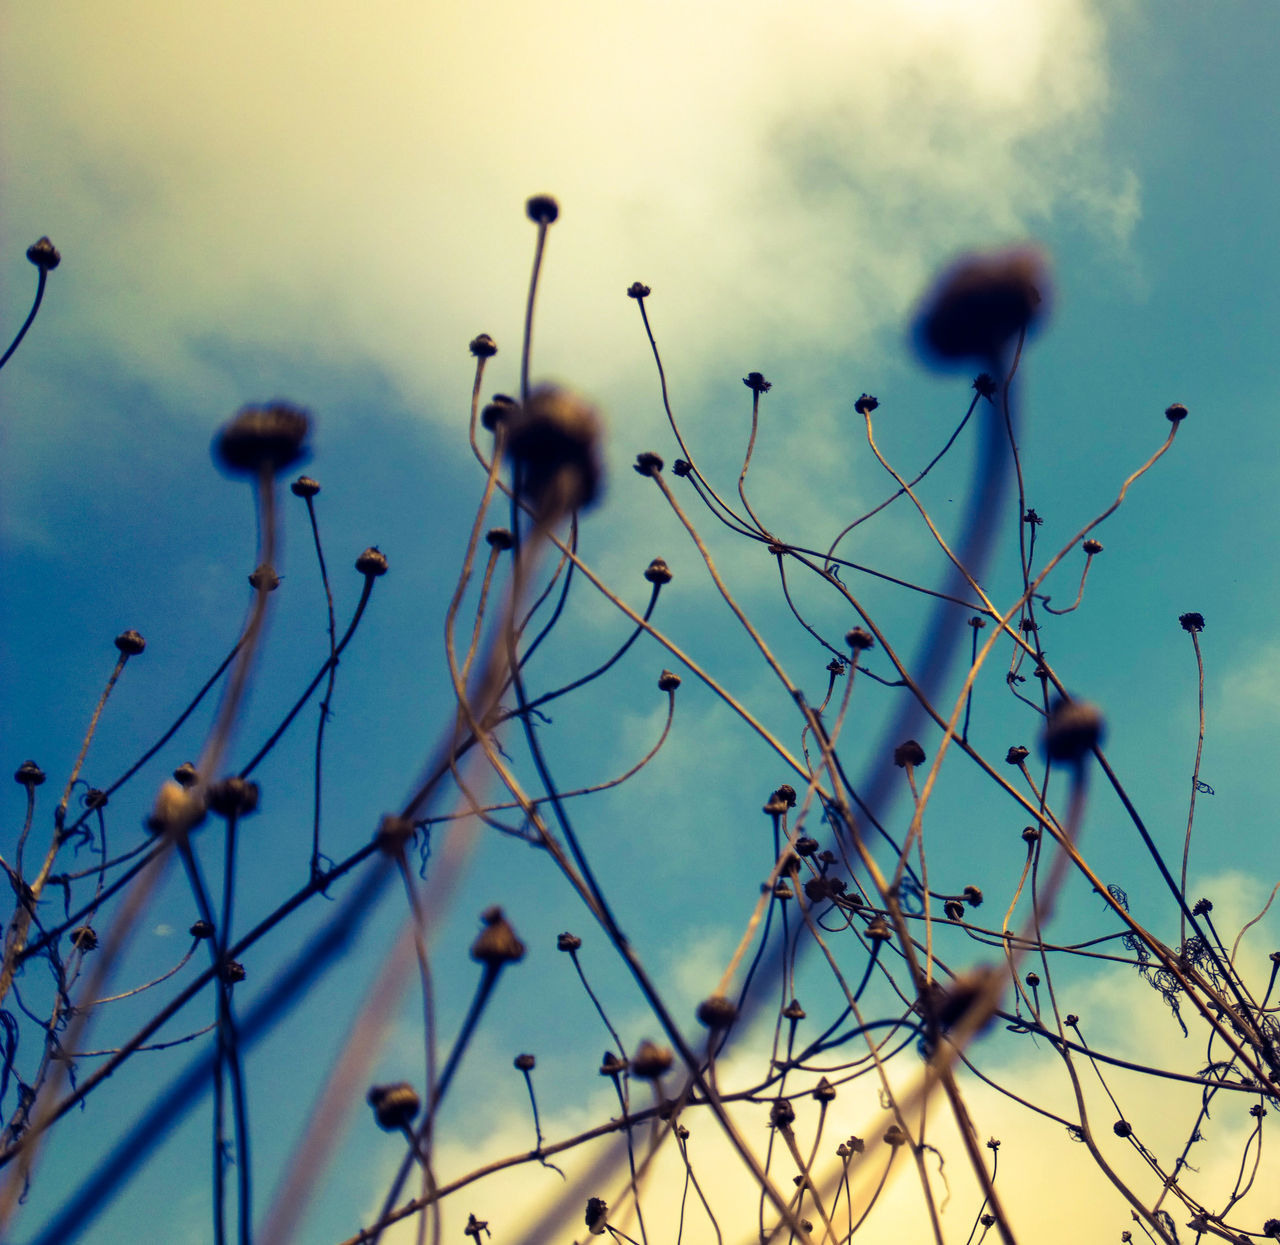 plant, nature, growth, no people, outdoors, beauty in nature, flower, day, close-up, fragility, sky, freshness